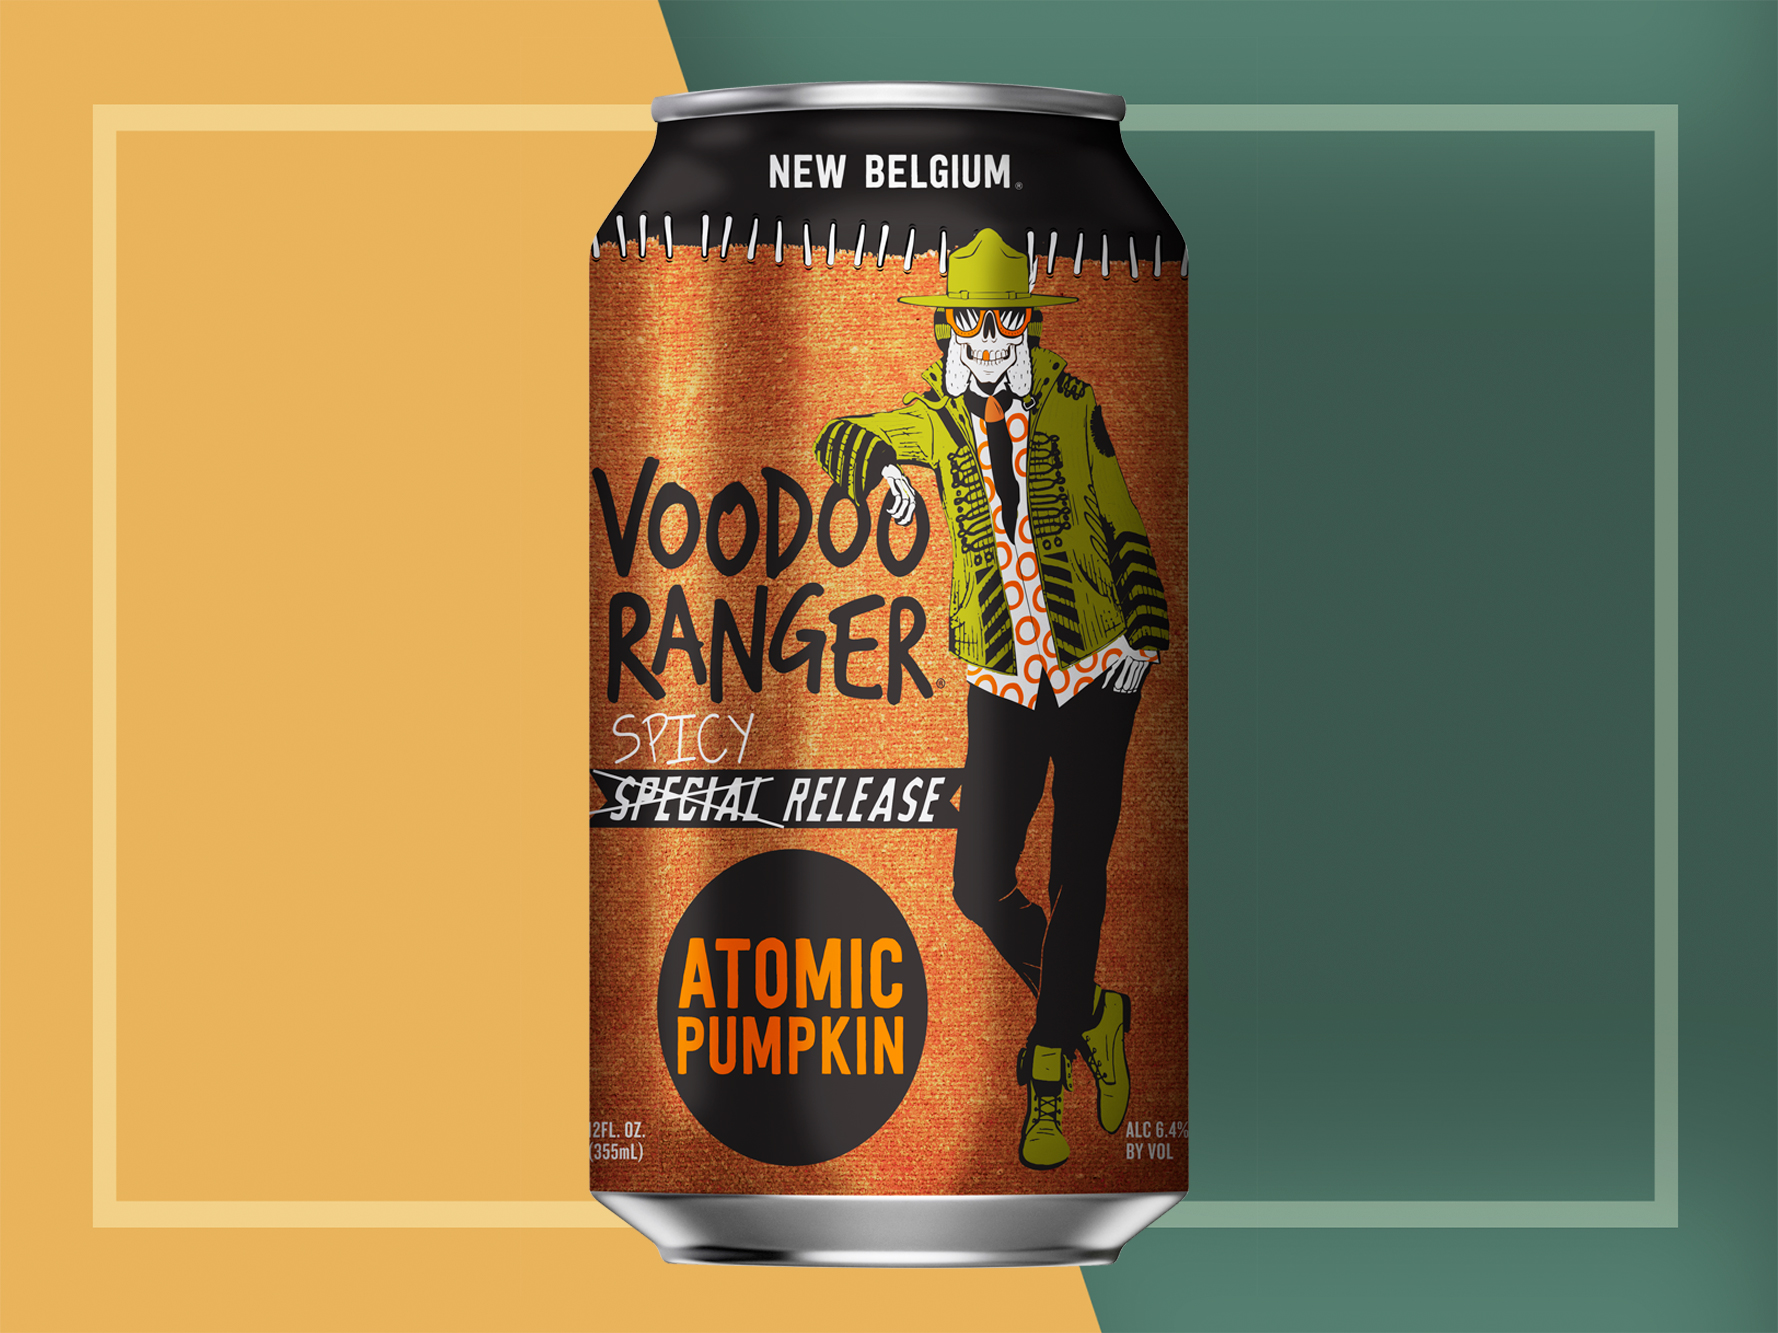 Voodoo Ranger Atomic Pumpkin Beer